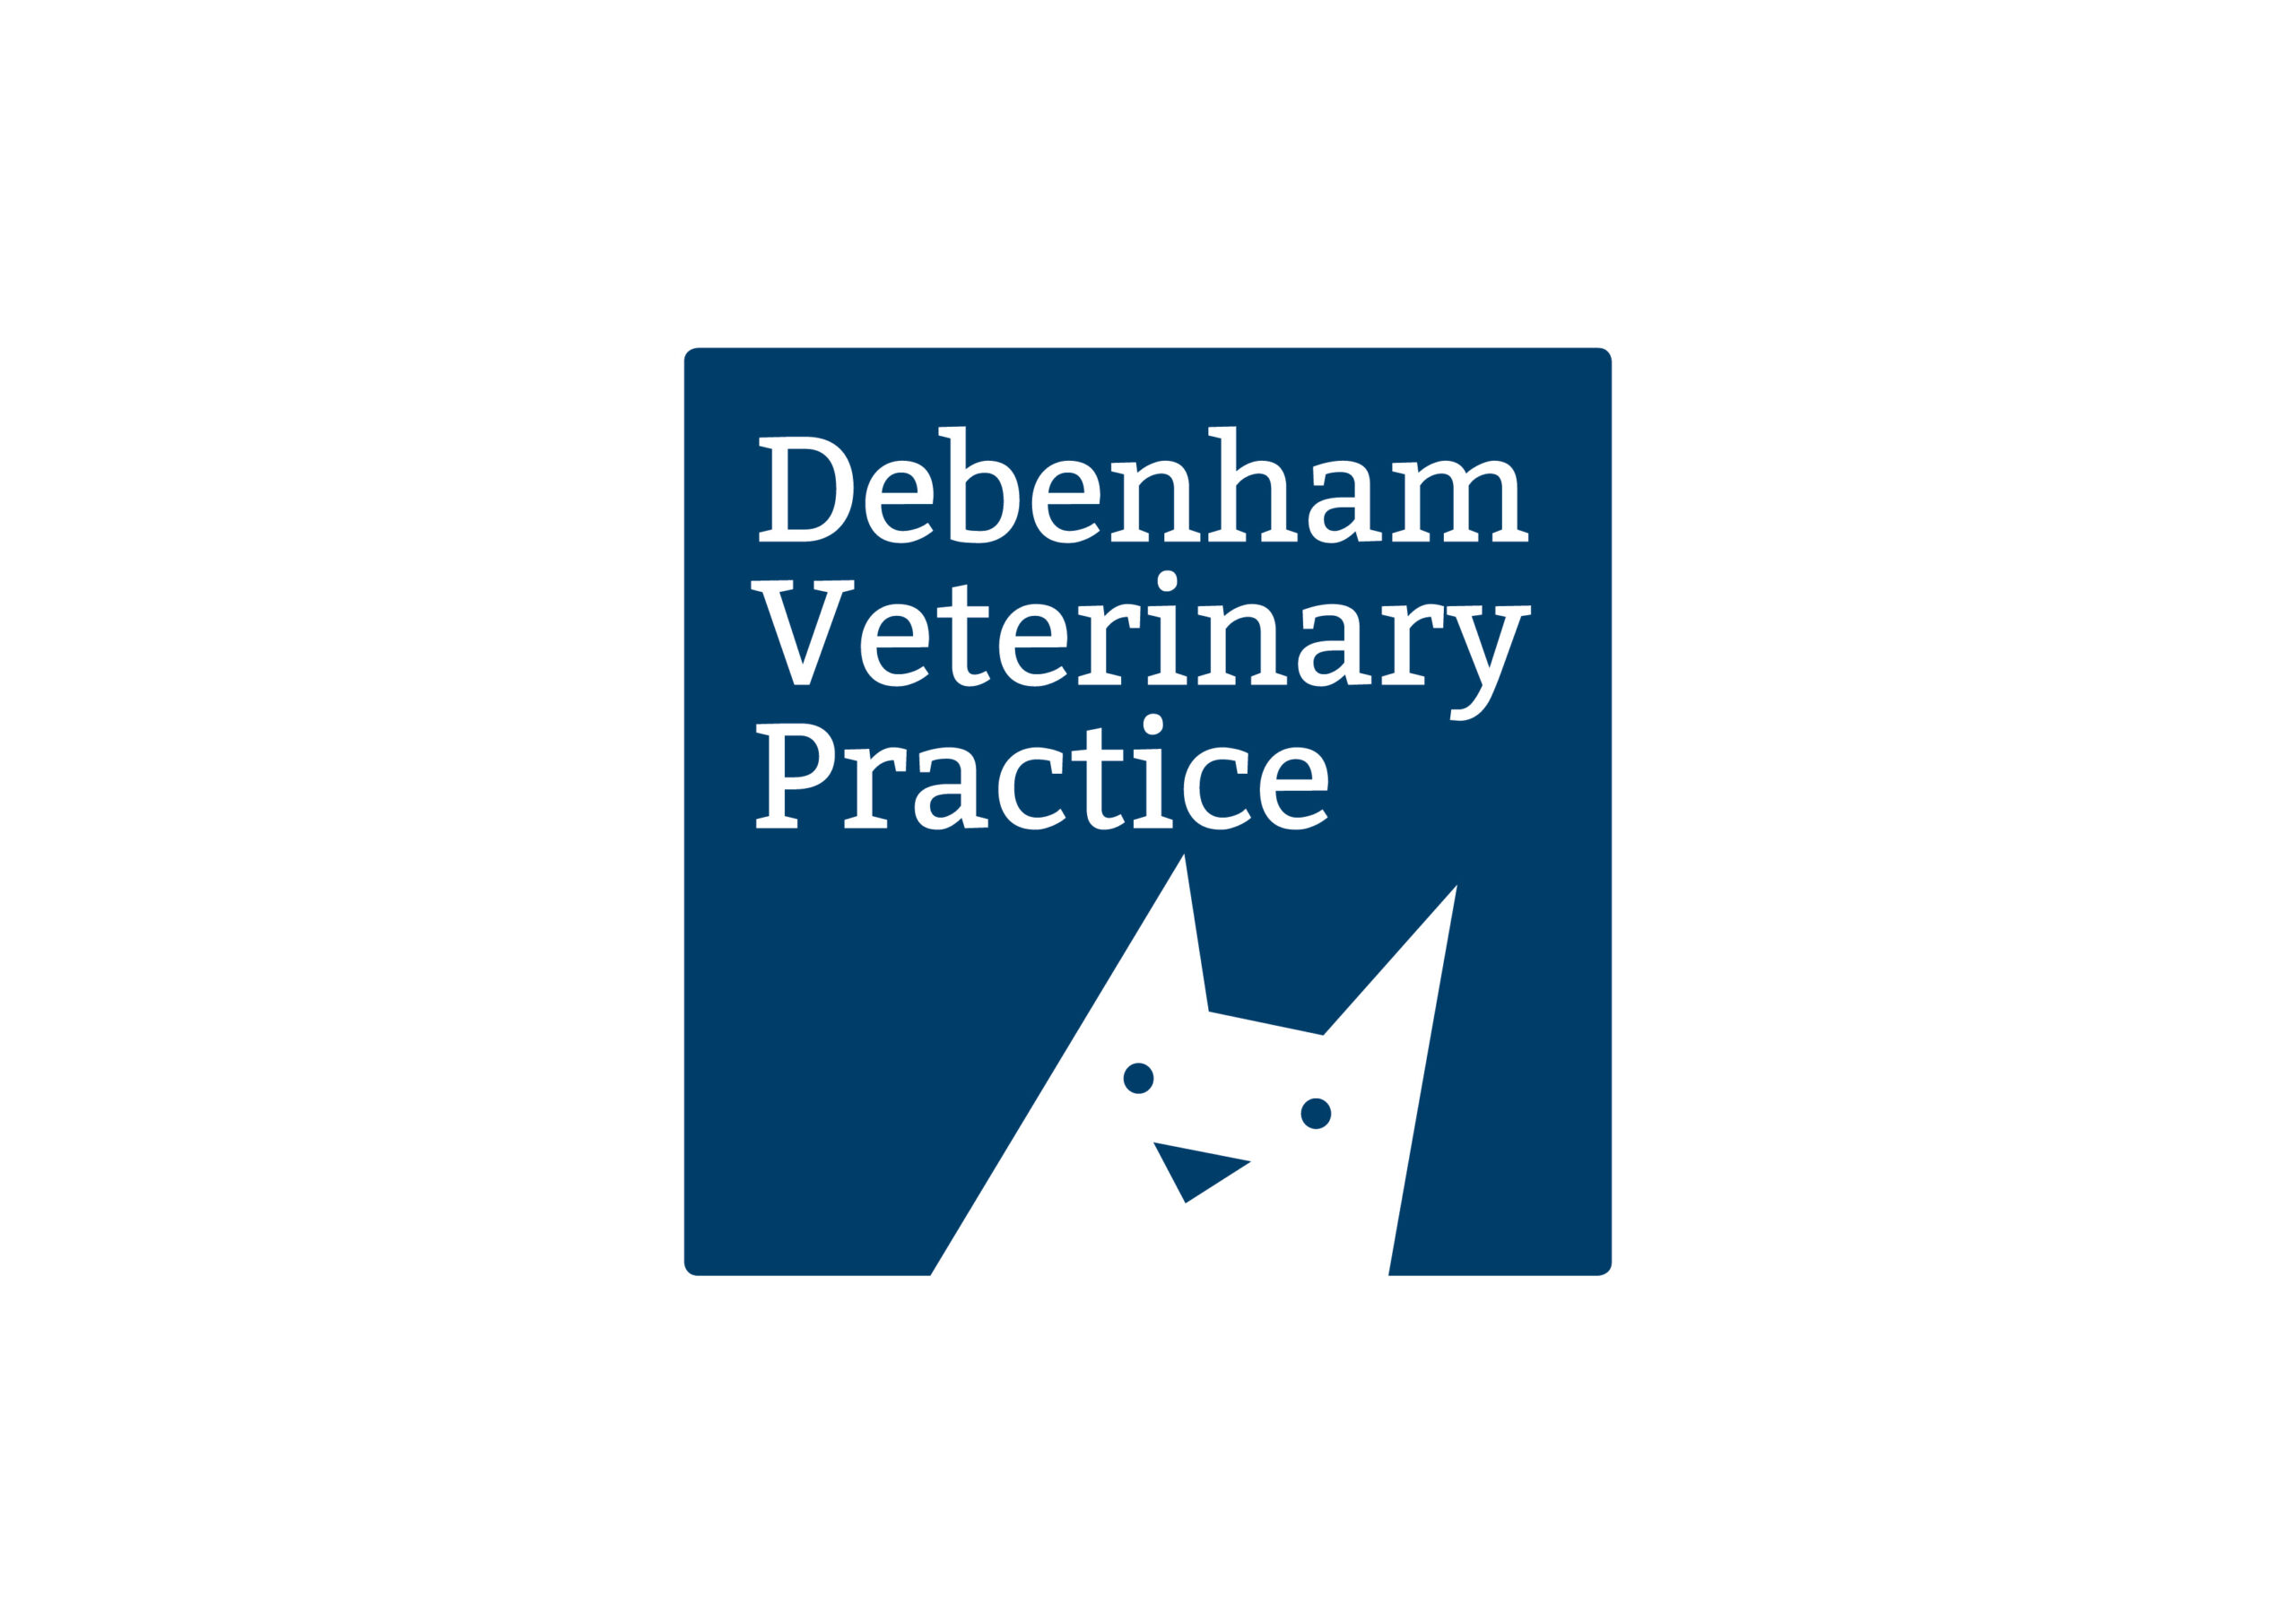 Debenham Vets Needs a Diplomate or Experienced Advanced Practitioner